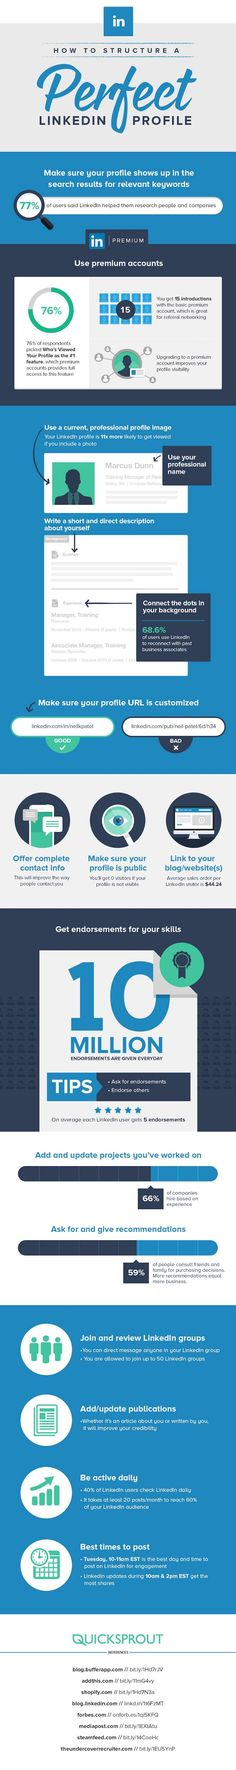 How to Create an Awesome LinkedIn Profile? INFOGRAPHIC – Business Daily: Startups, Business Development, Management – Medium